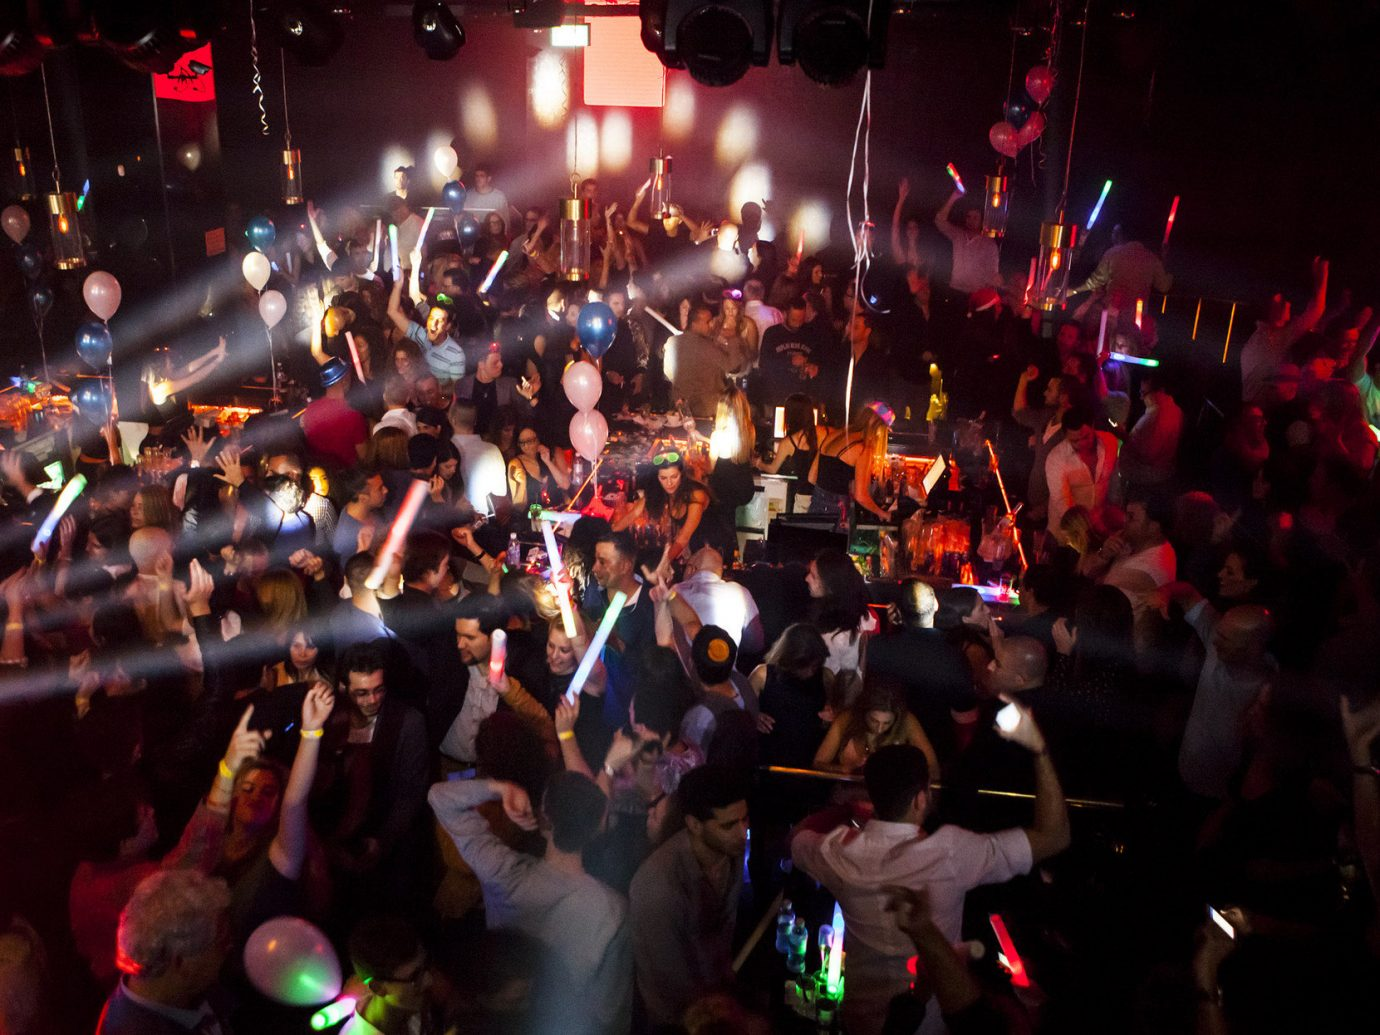 Bar Drink Nightlife Party Trip Ideas person crowd performance people rock concert audience group nightclub musician Music night concert disco music venue bunch several